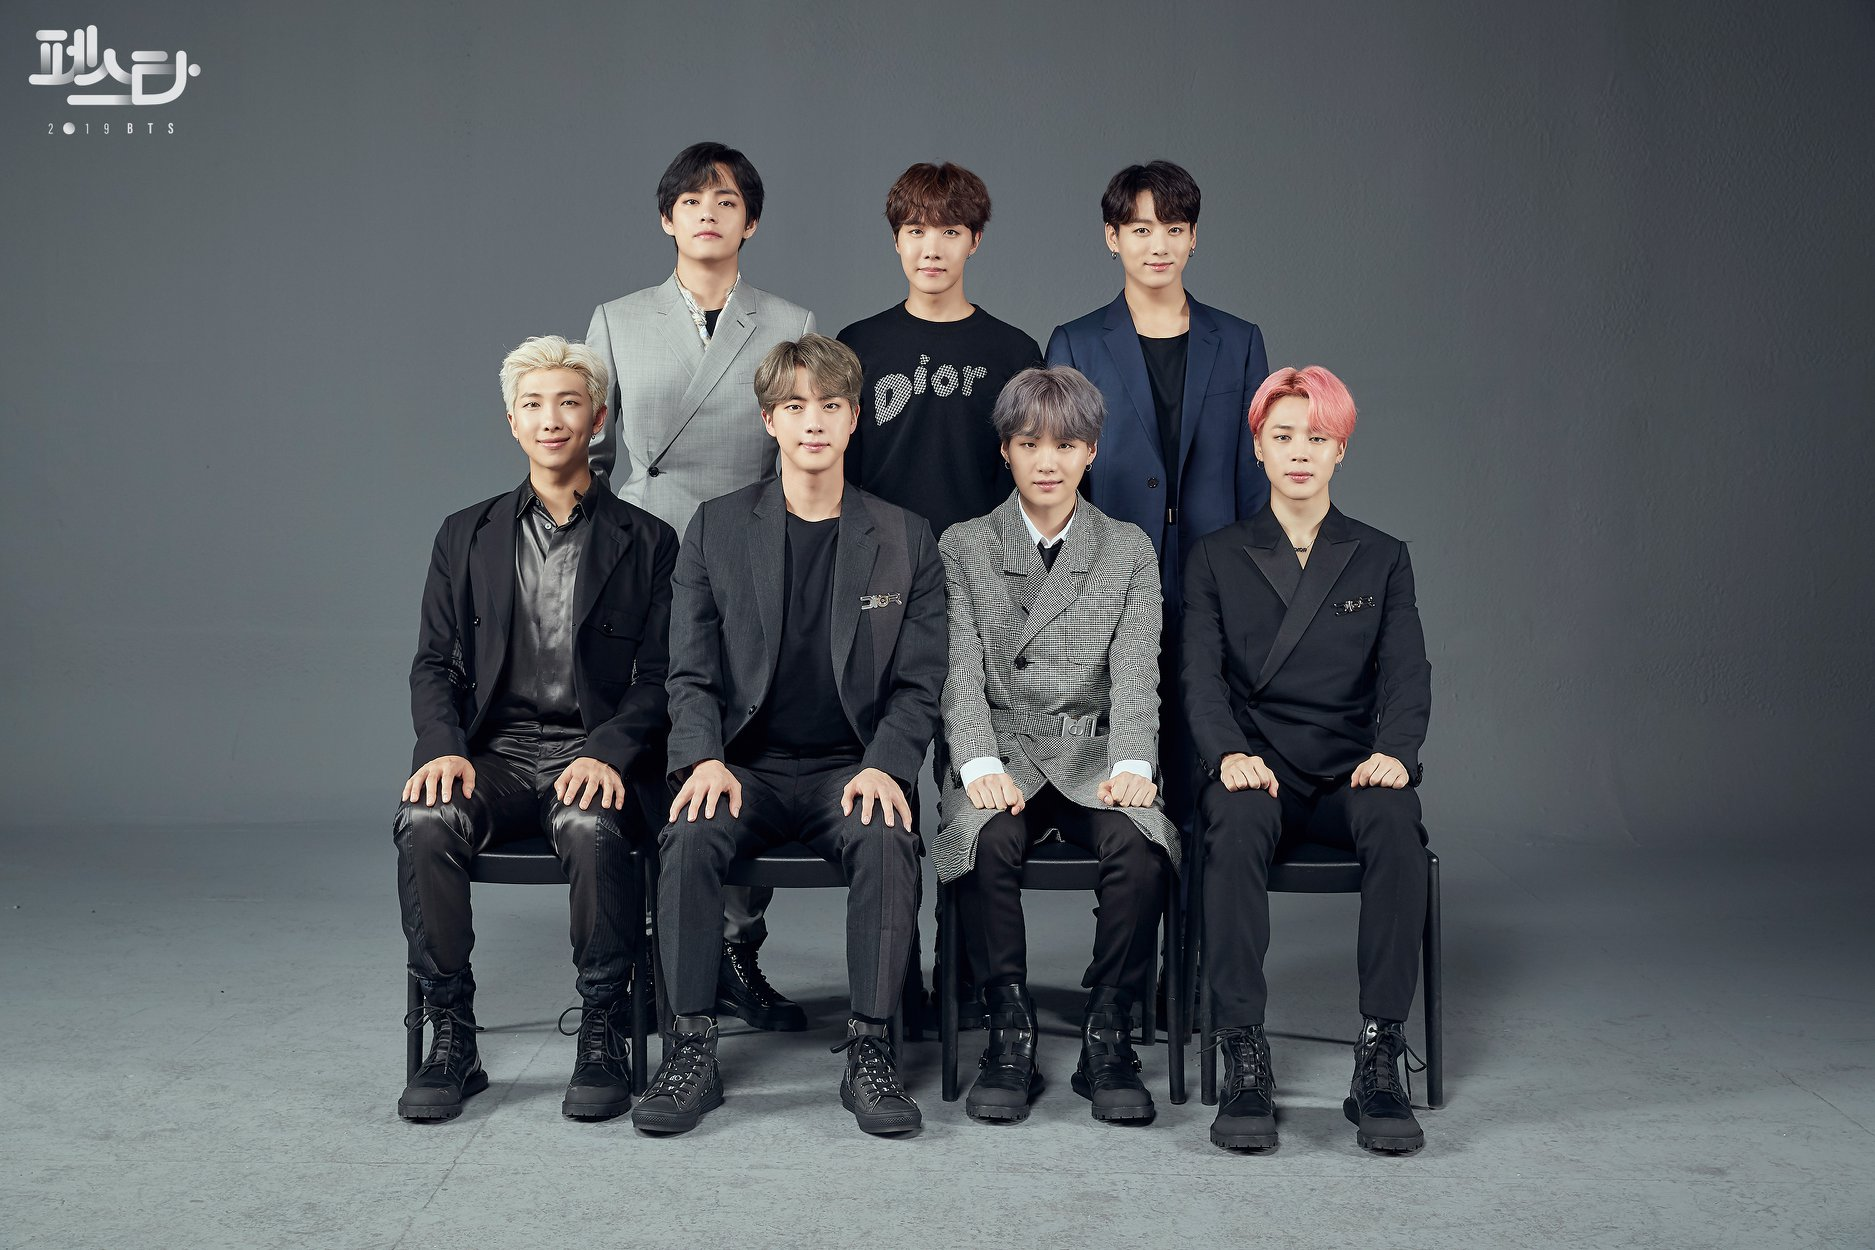 BTS Festa 2019 Family Portrait Photos #2